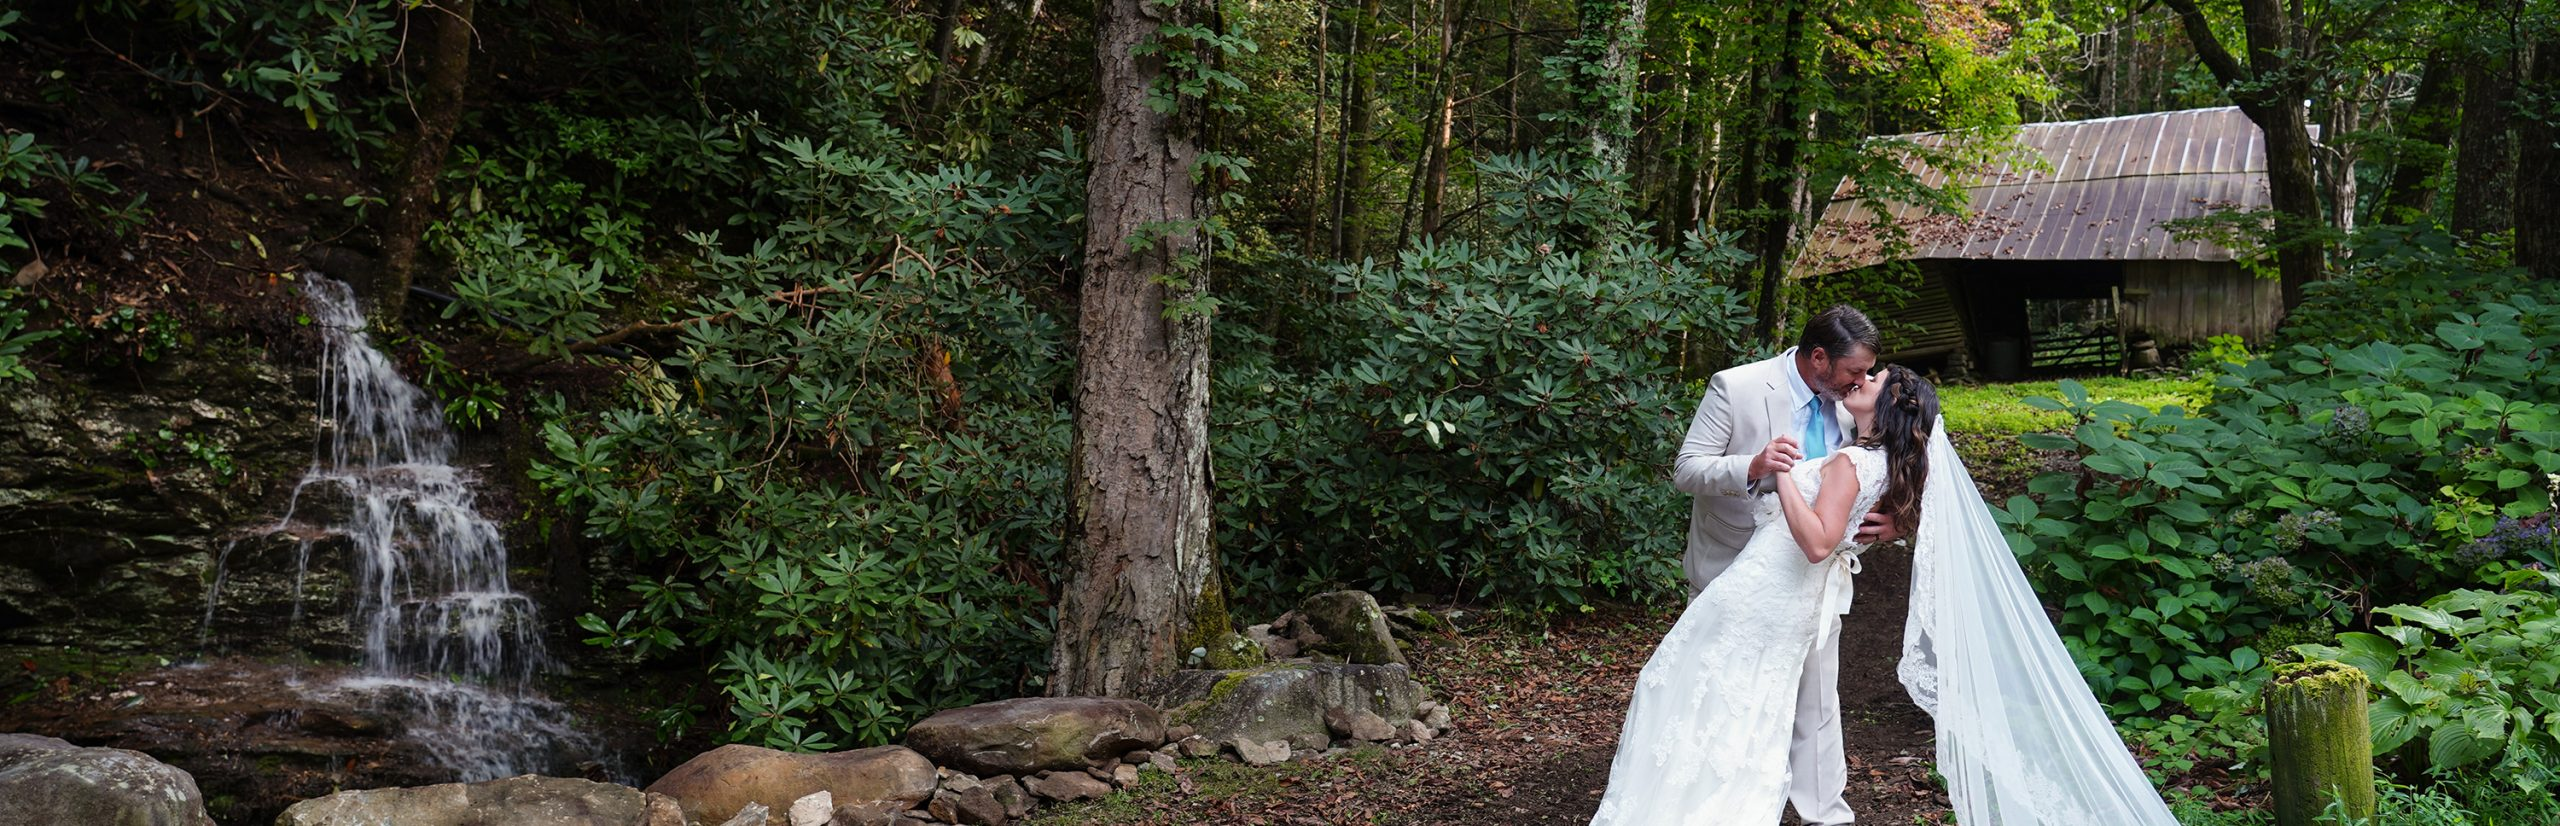 Wedding couple at Smoky Mountain private waterfall near vintage barn